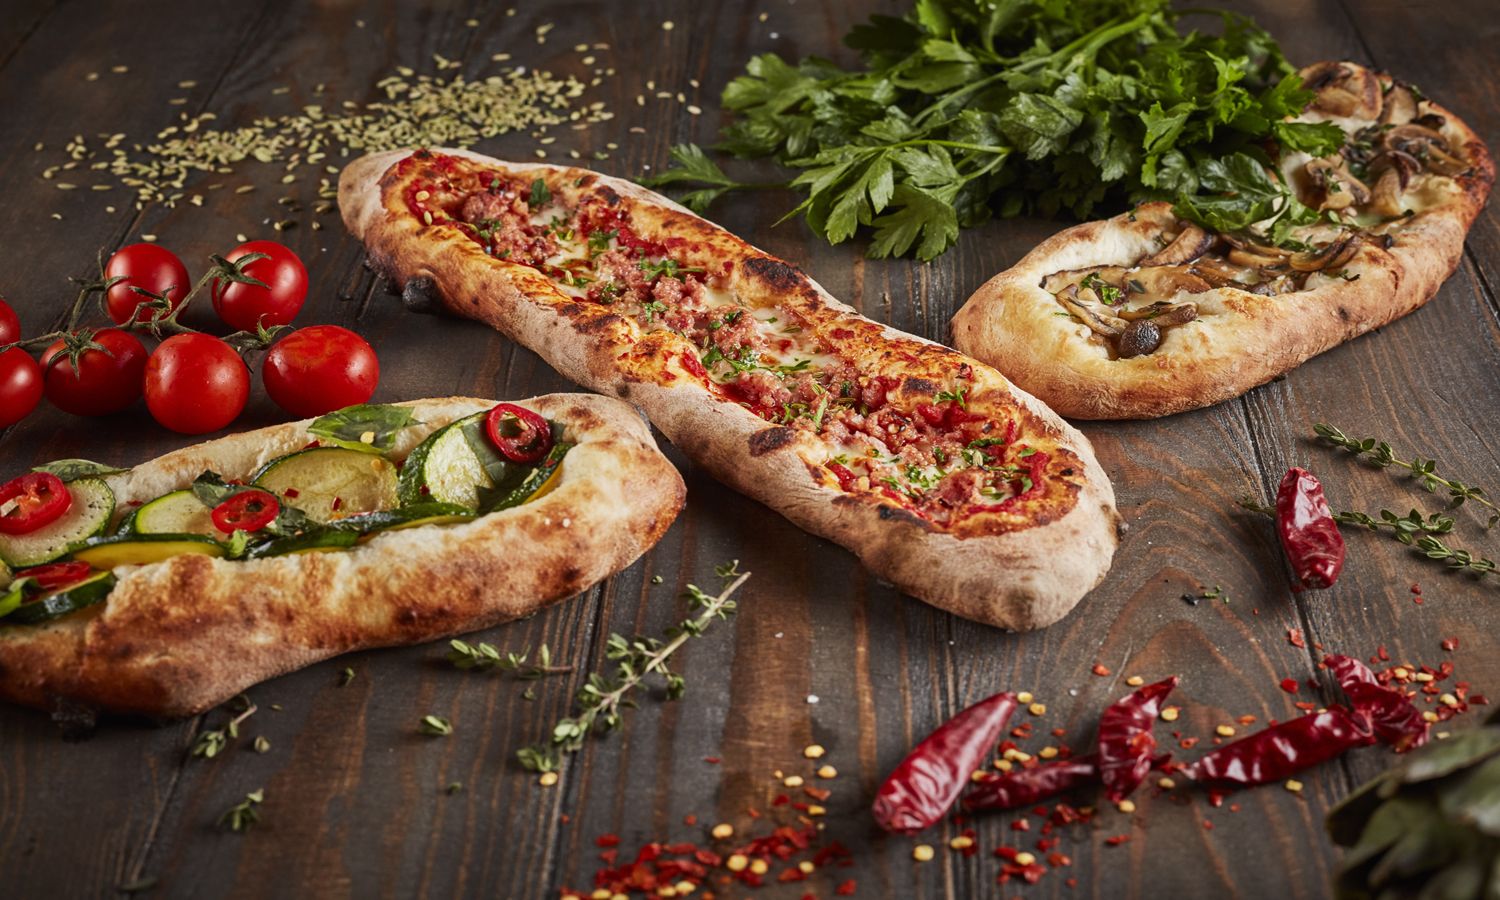 Get pizza, sides, dessert and bottomless prosecco for just £19.50 at Terra Terra